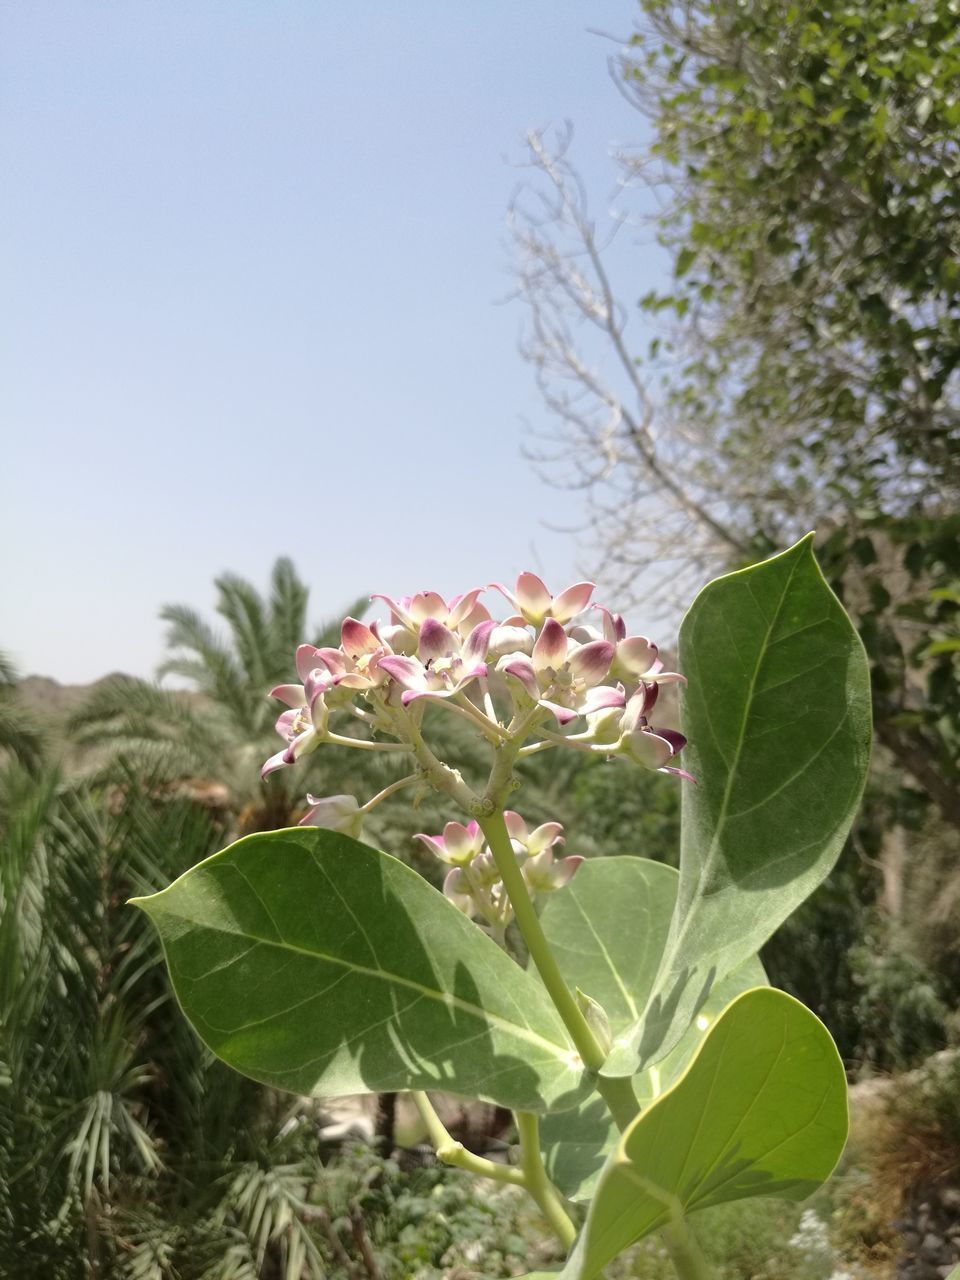 Close-Up Of Flowers And Leaves Against Clear Sky